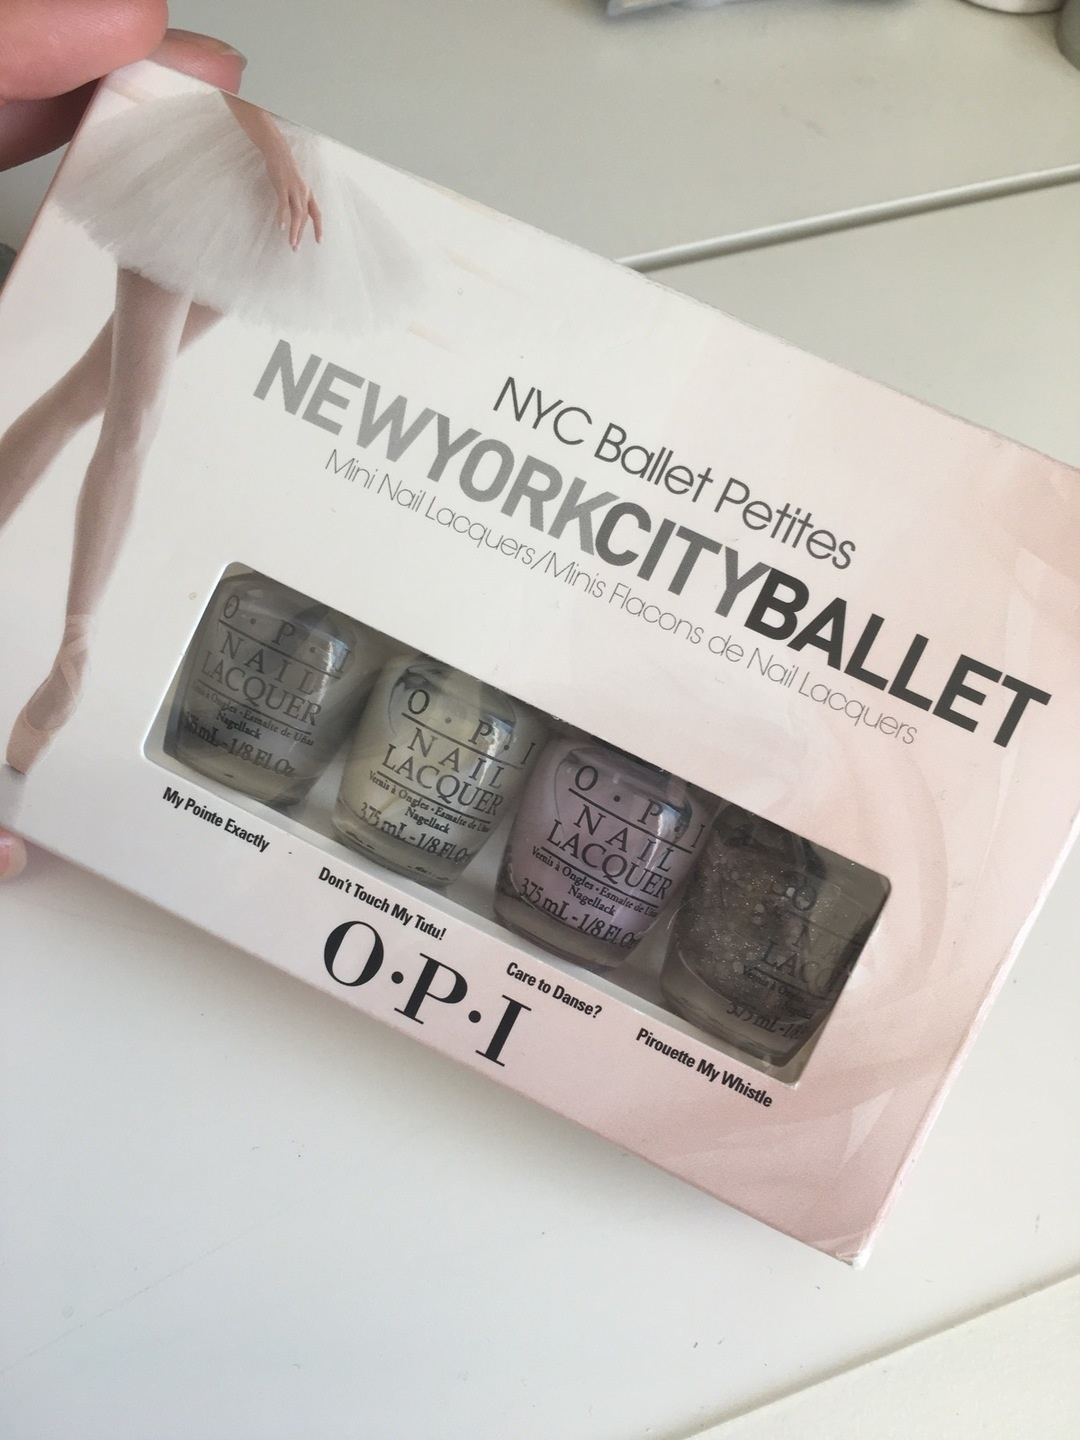 Women's cosmetics & beauty - OPI photo 1